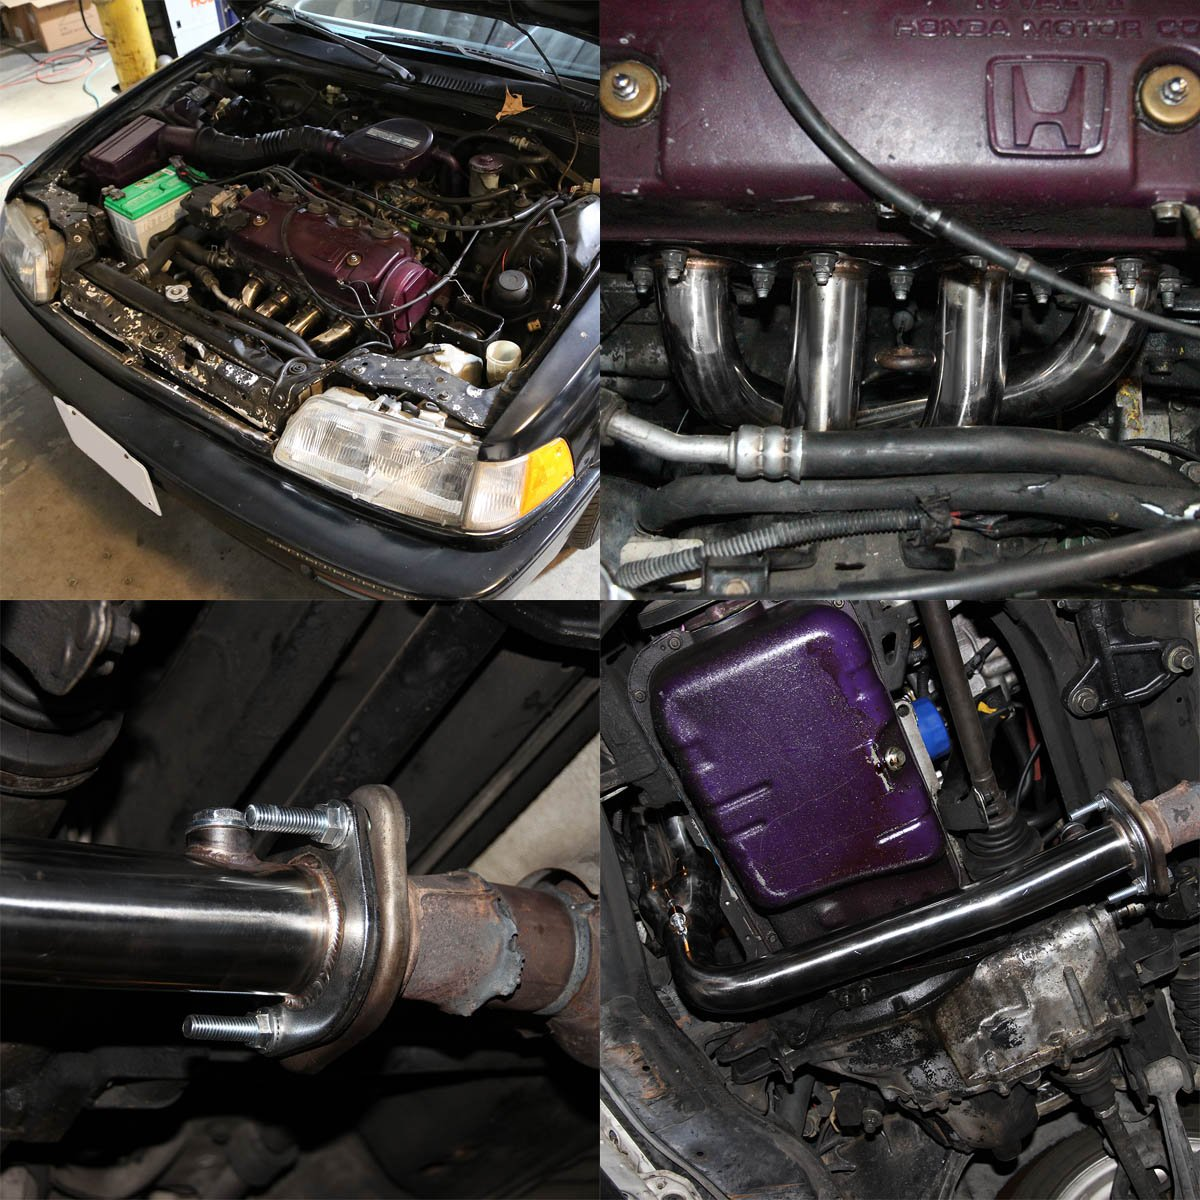 For Honda Civic//CRX//Del Sol Performance 4-2-1 Design Stainless Steel Exhaust Header Kit Black Paint Finished